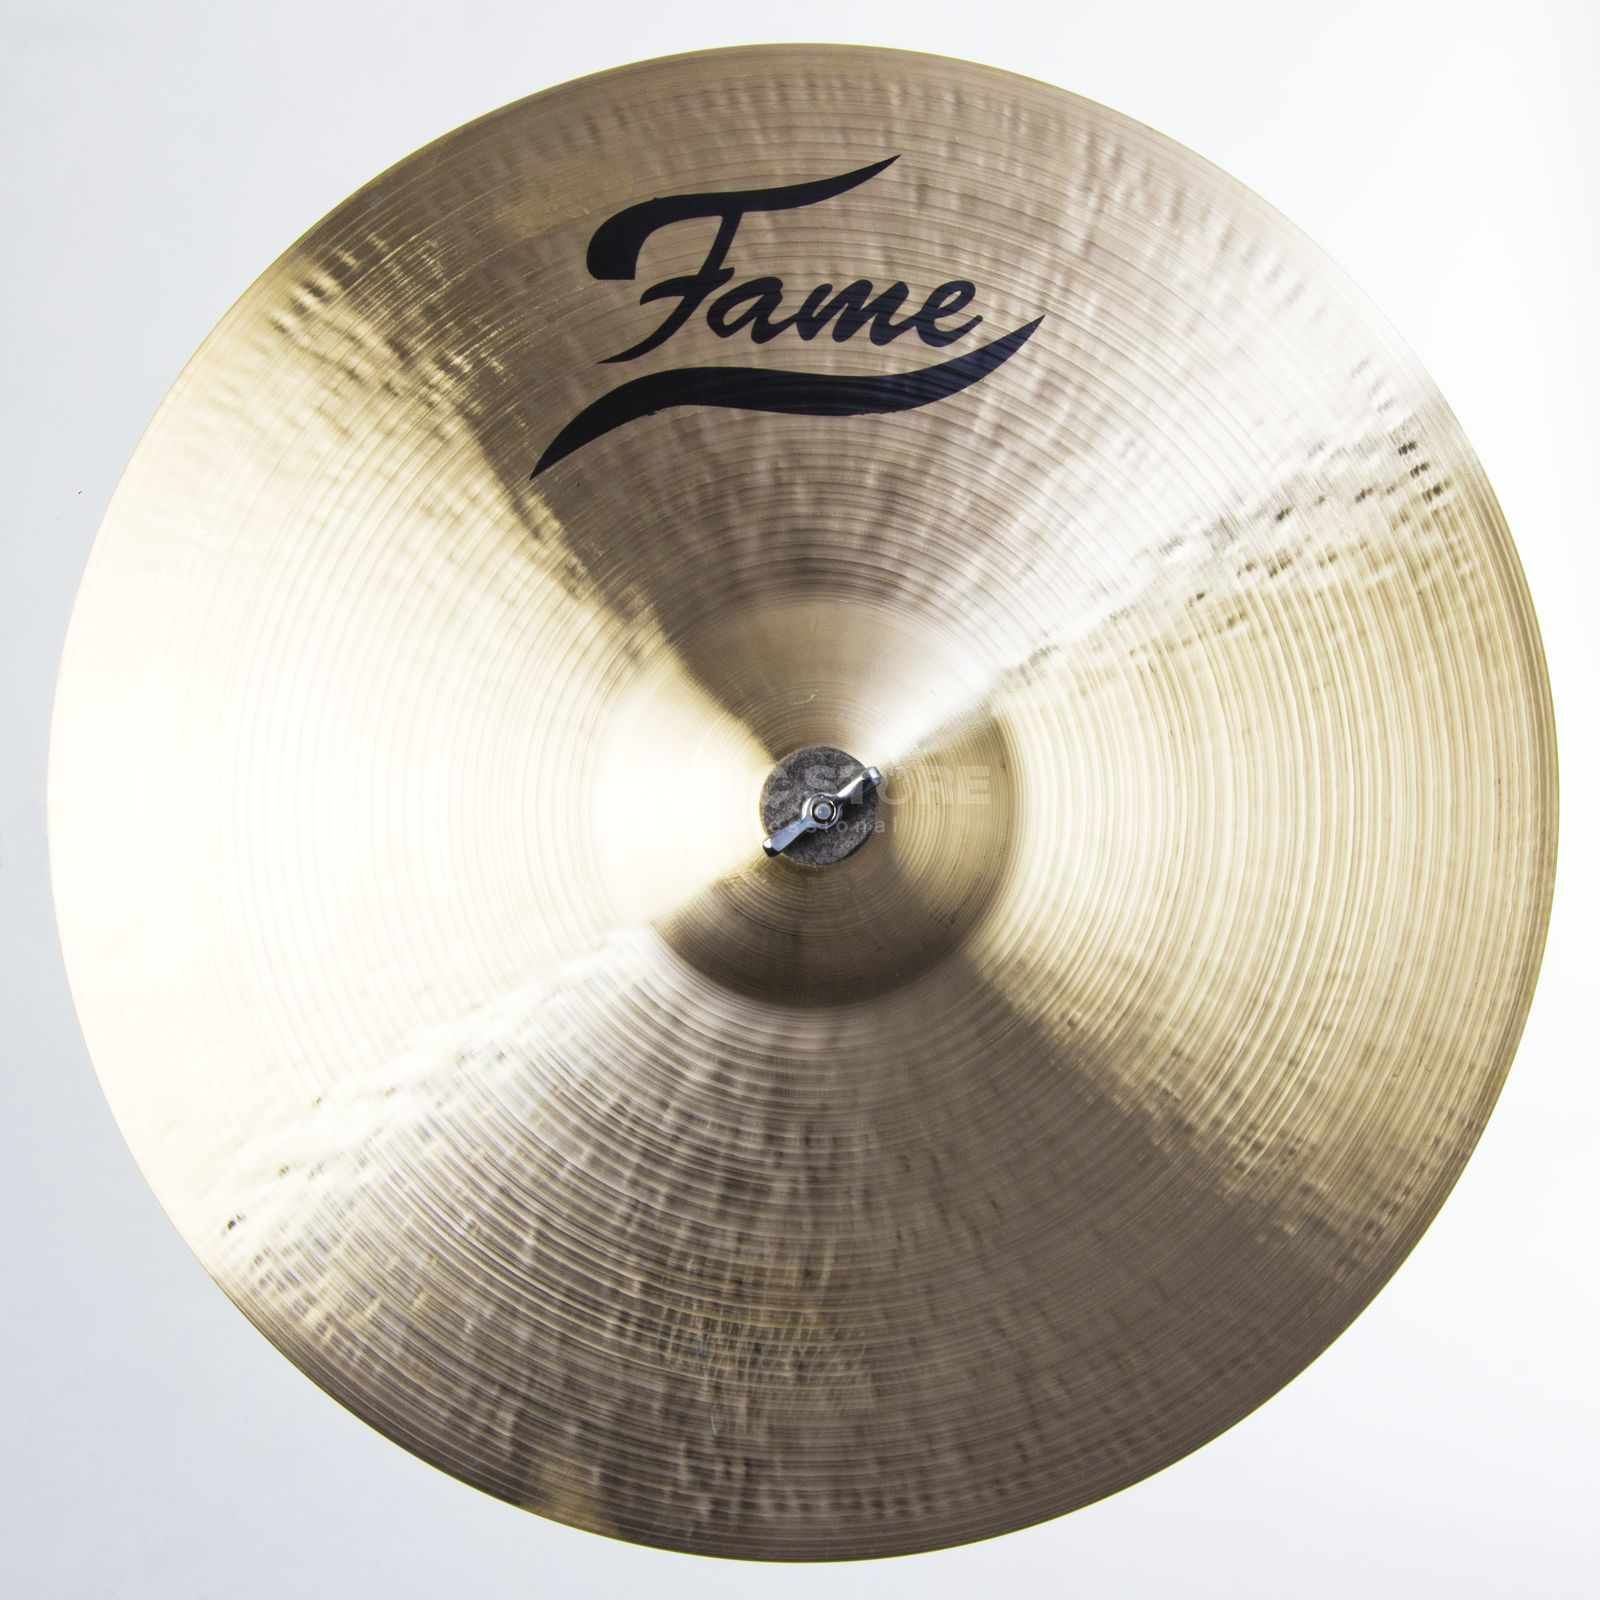 "Fame Masters B20 Medium Ride 20"", Natural Finish Produktbild"